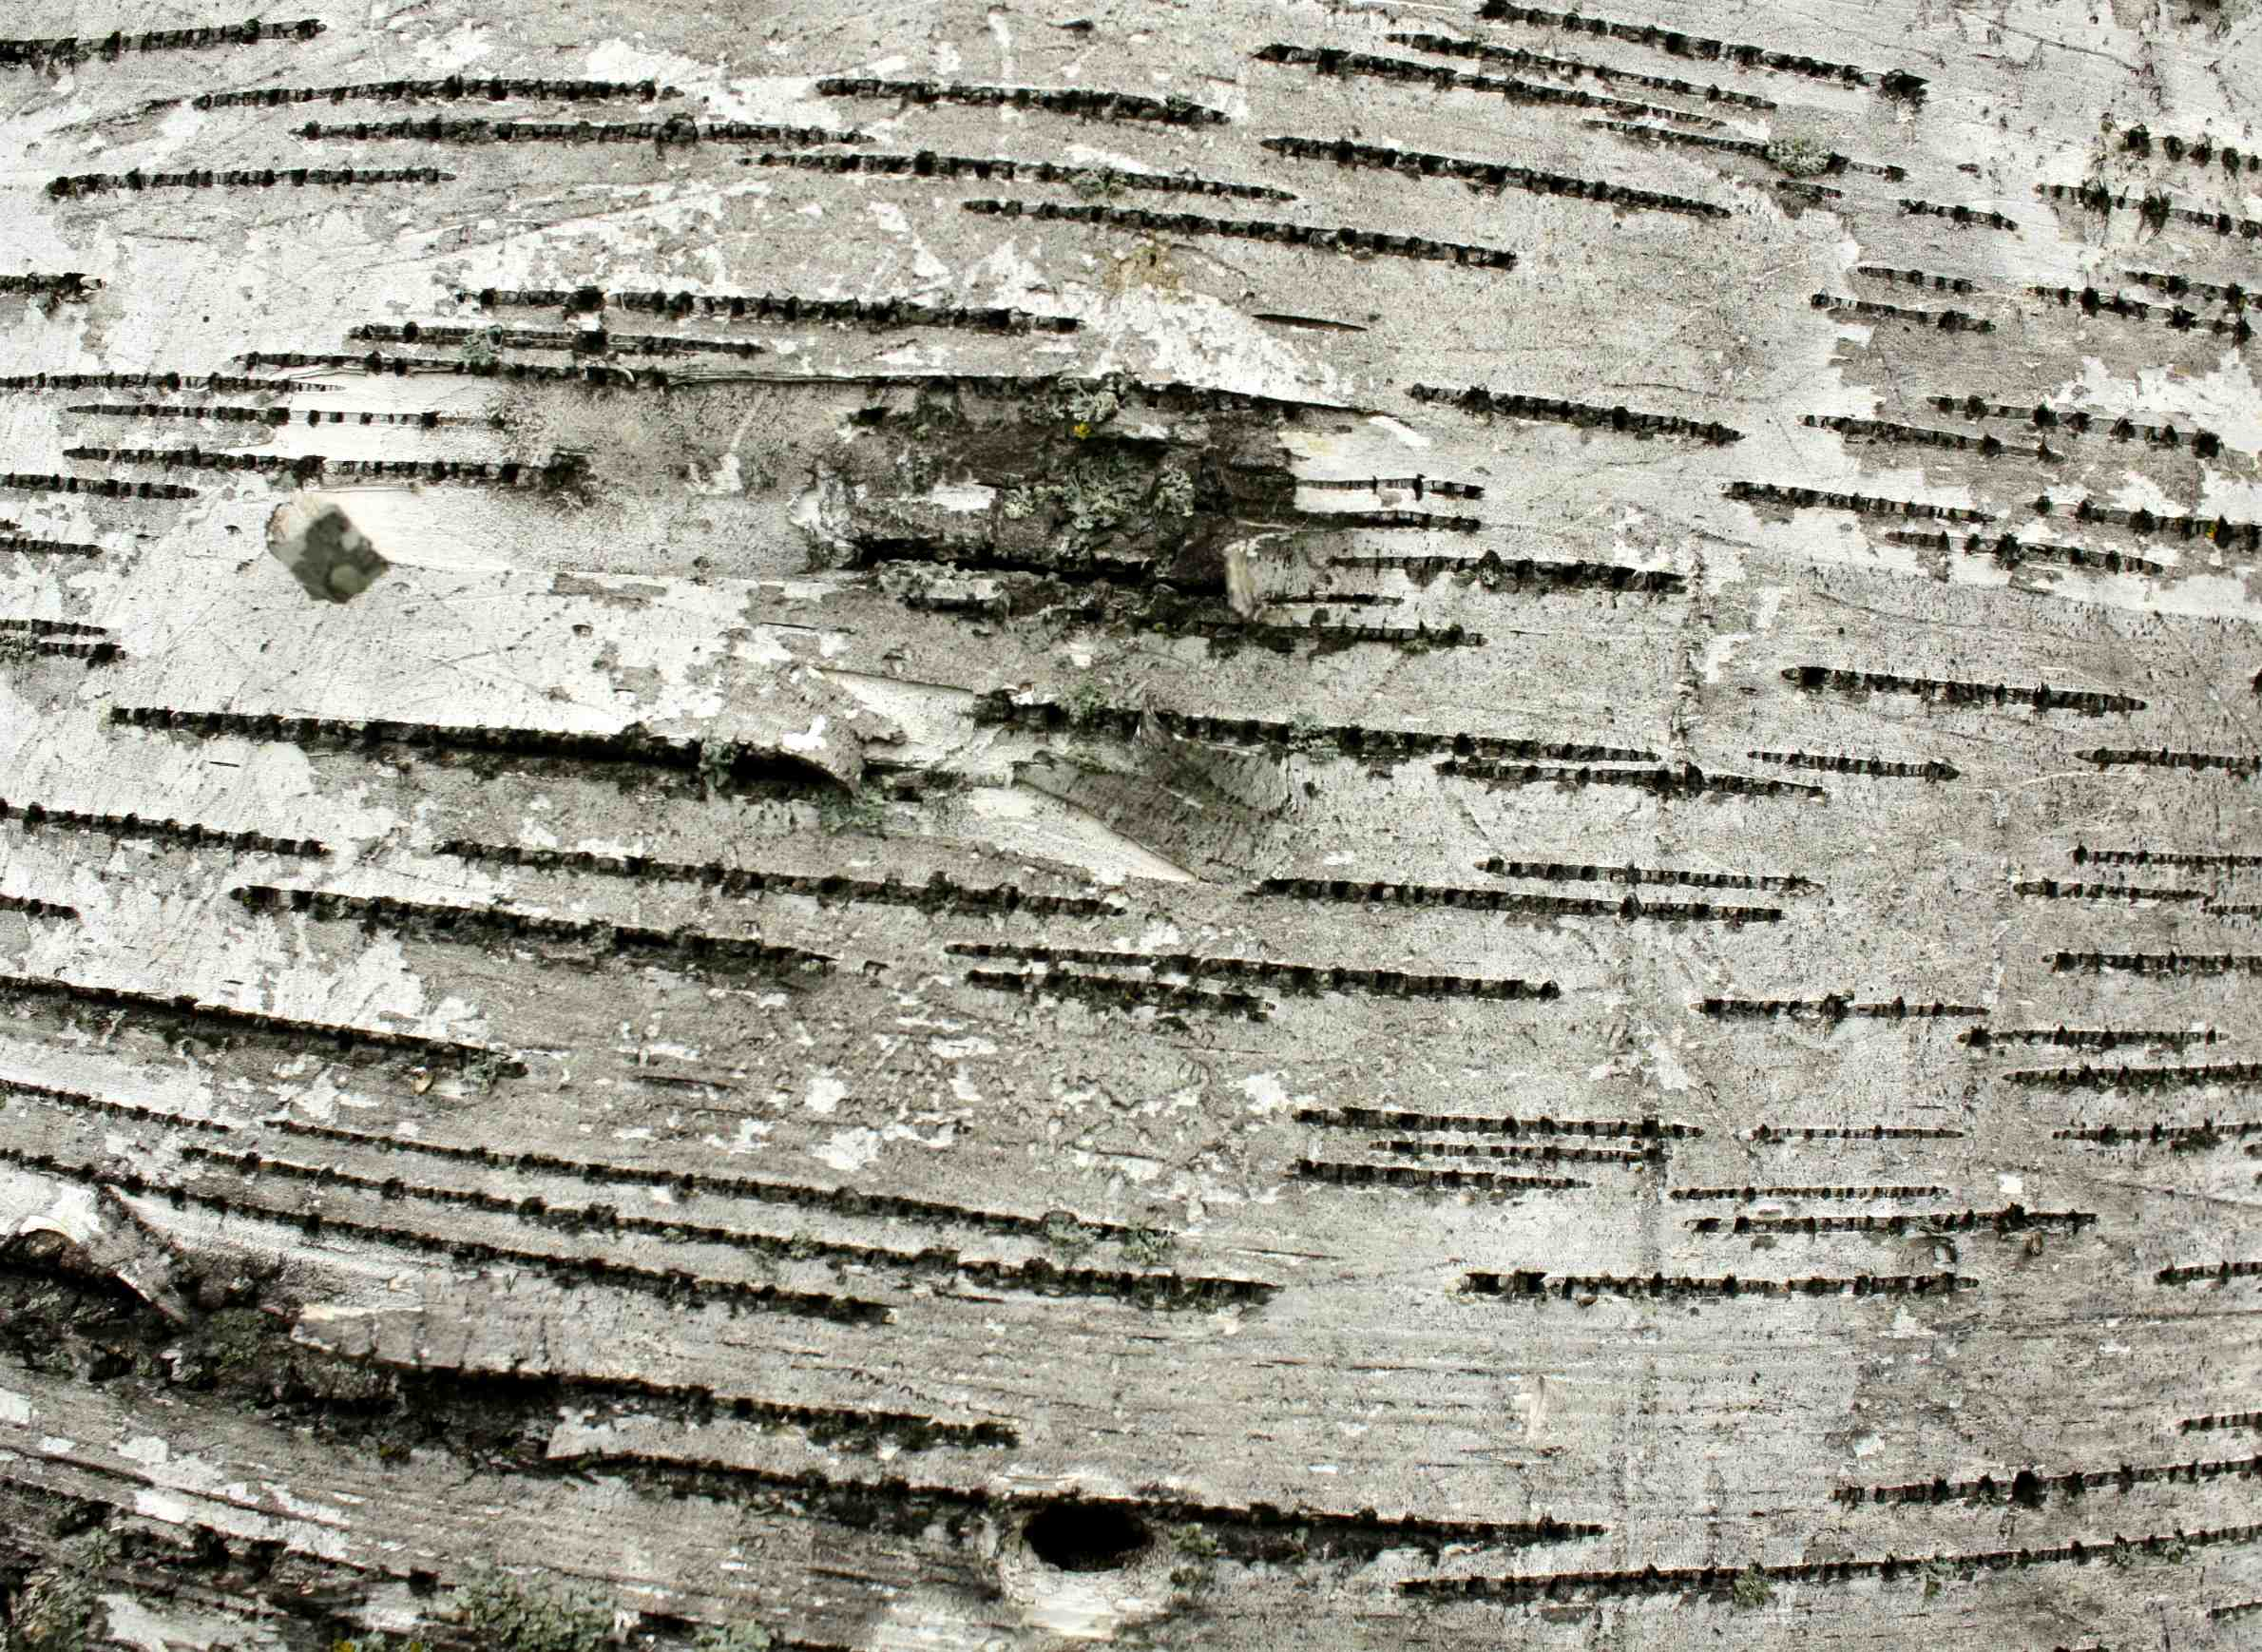 forests-paperbirch-poaching-management-industry.jpg